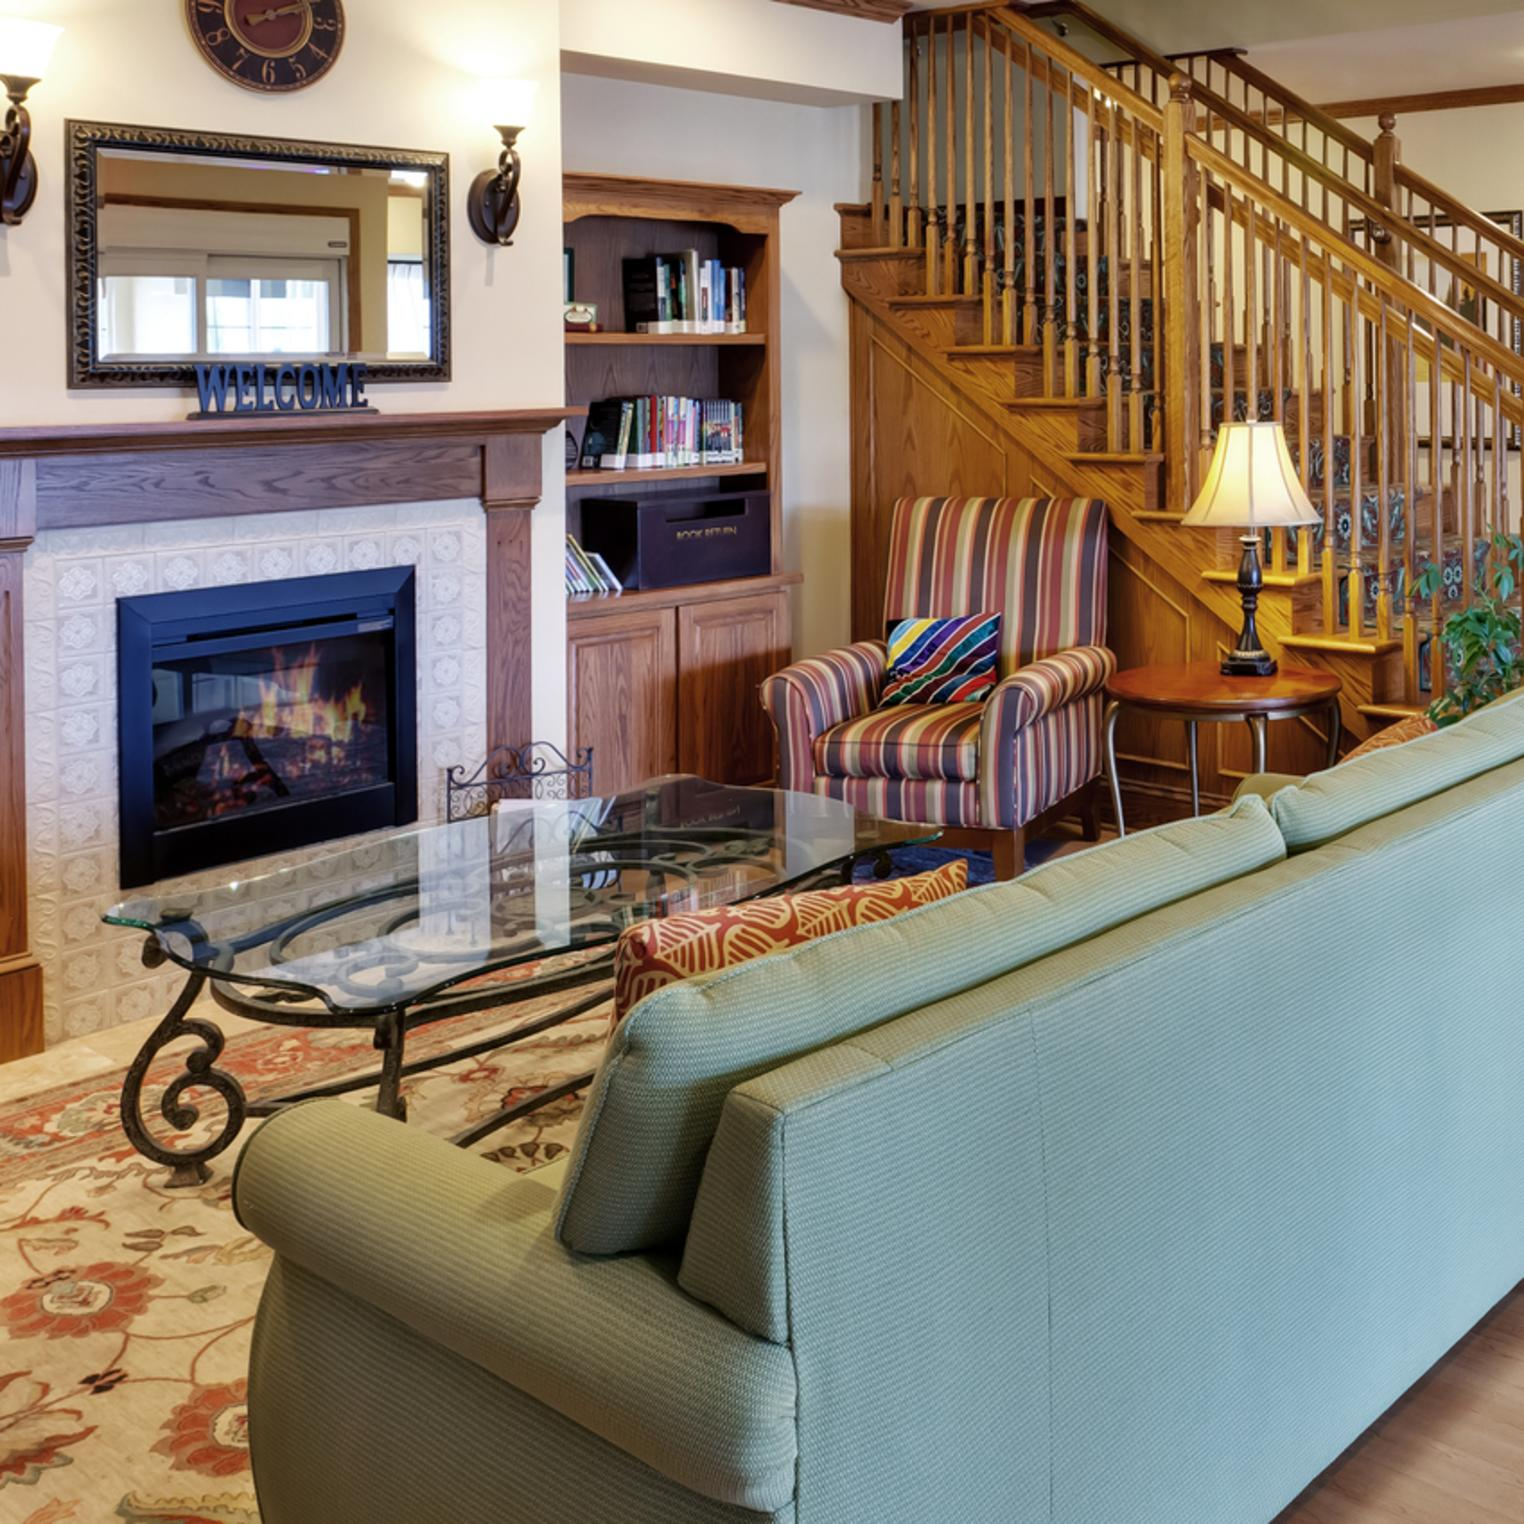 Country Inn and Suites Lobby